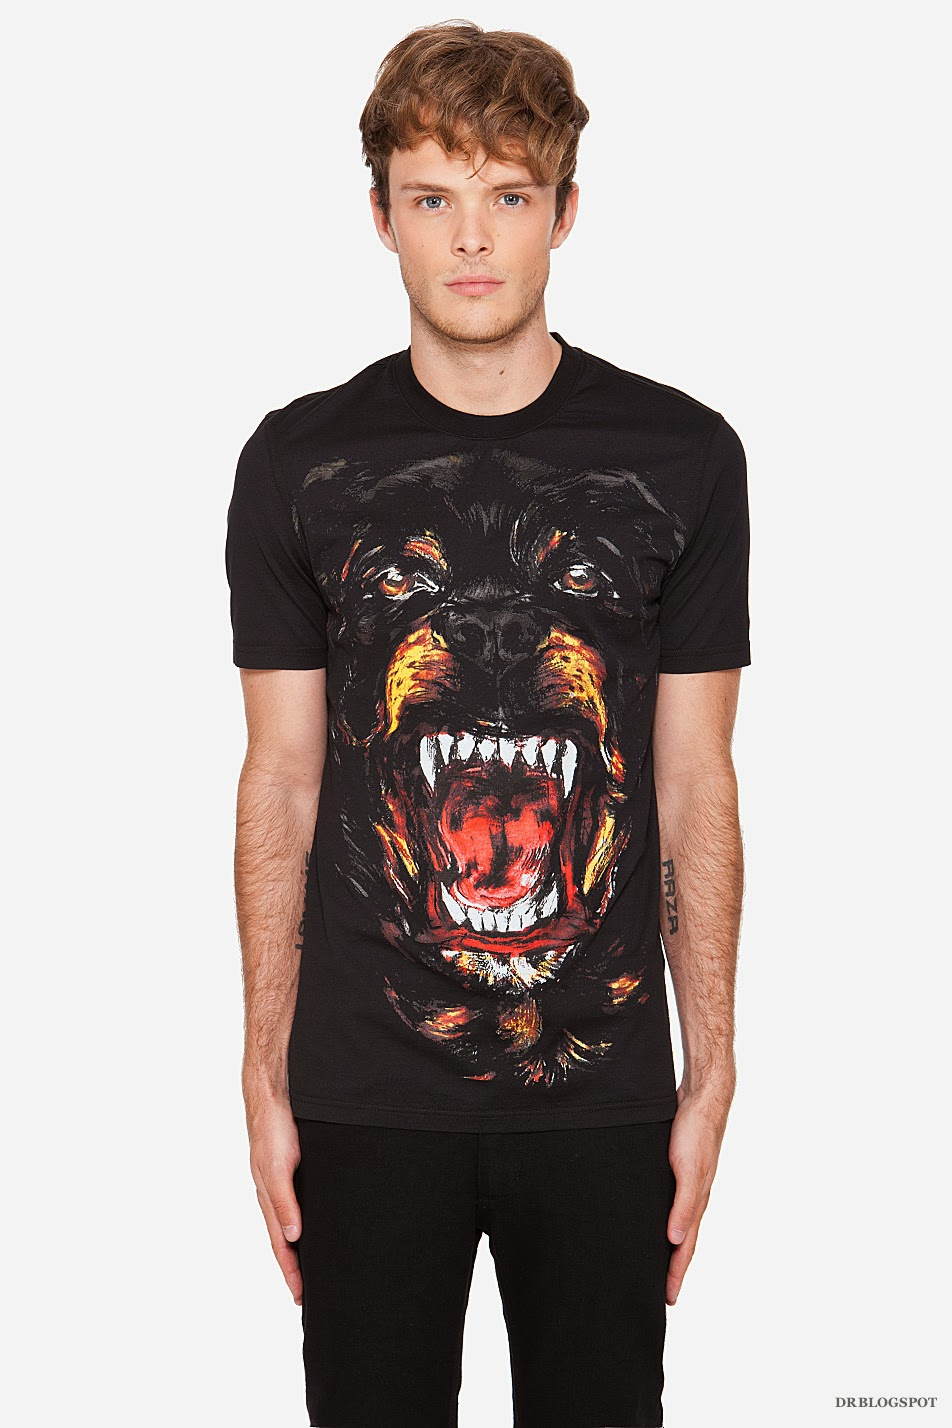 Givenchy rottweiler print cuban fit t shirt Givenchy t shirt price